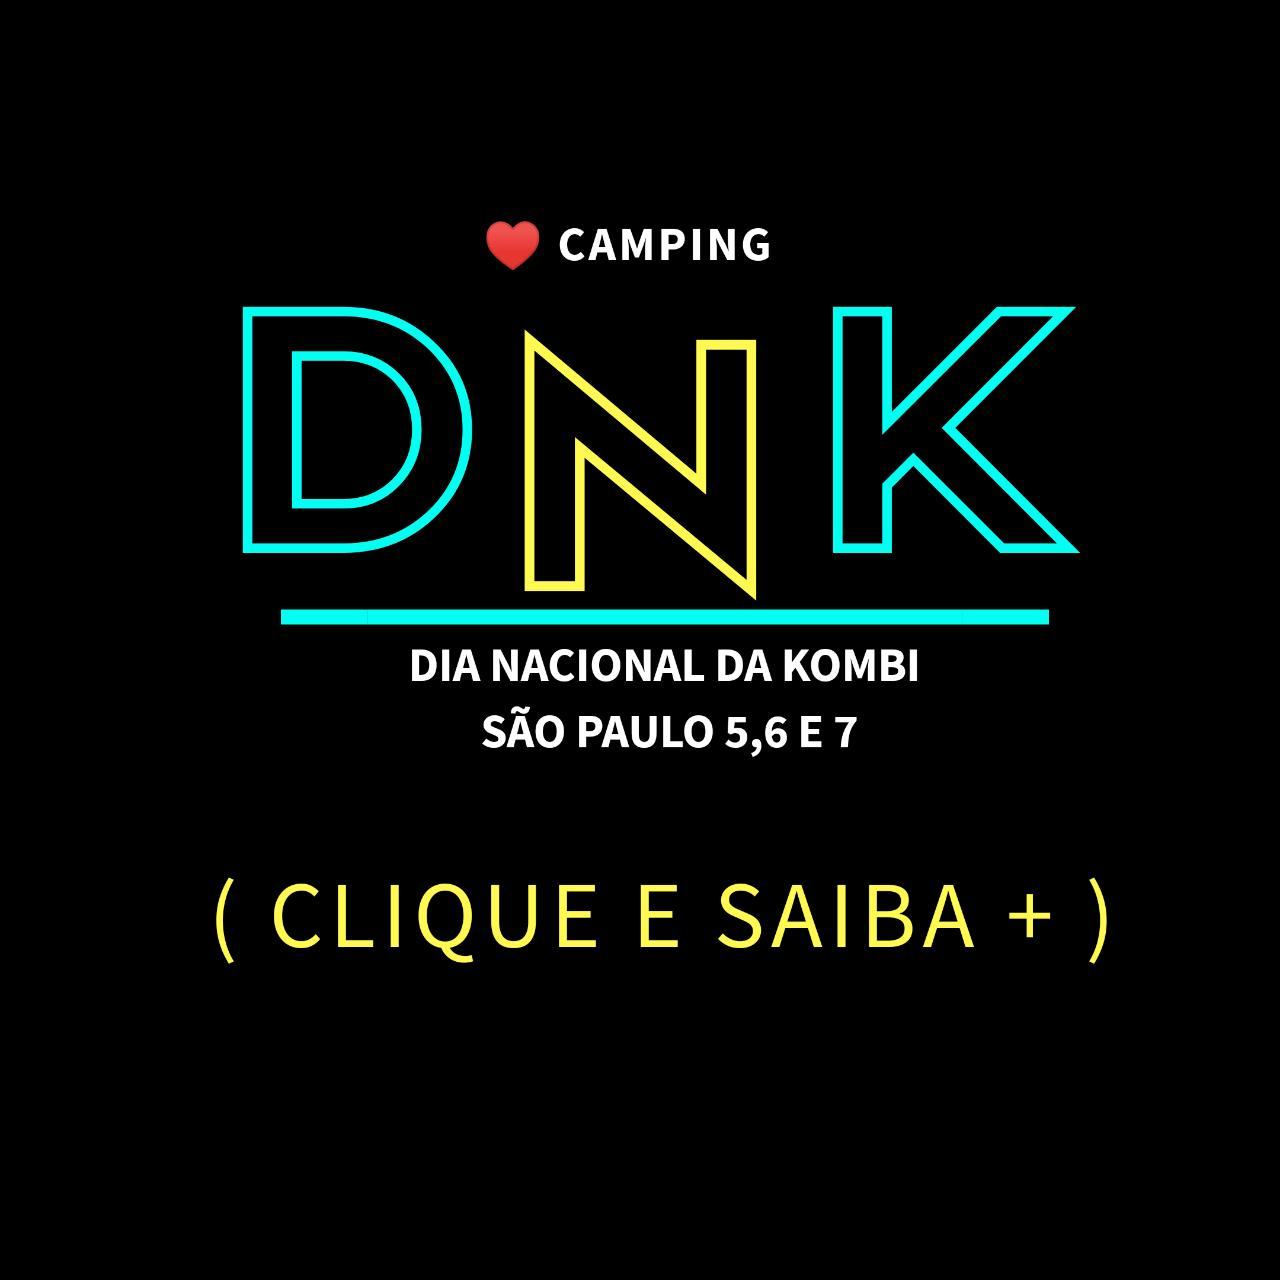 DNK-camping-2020